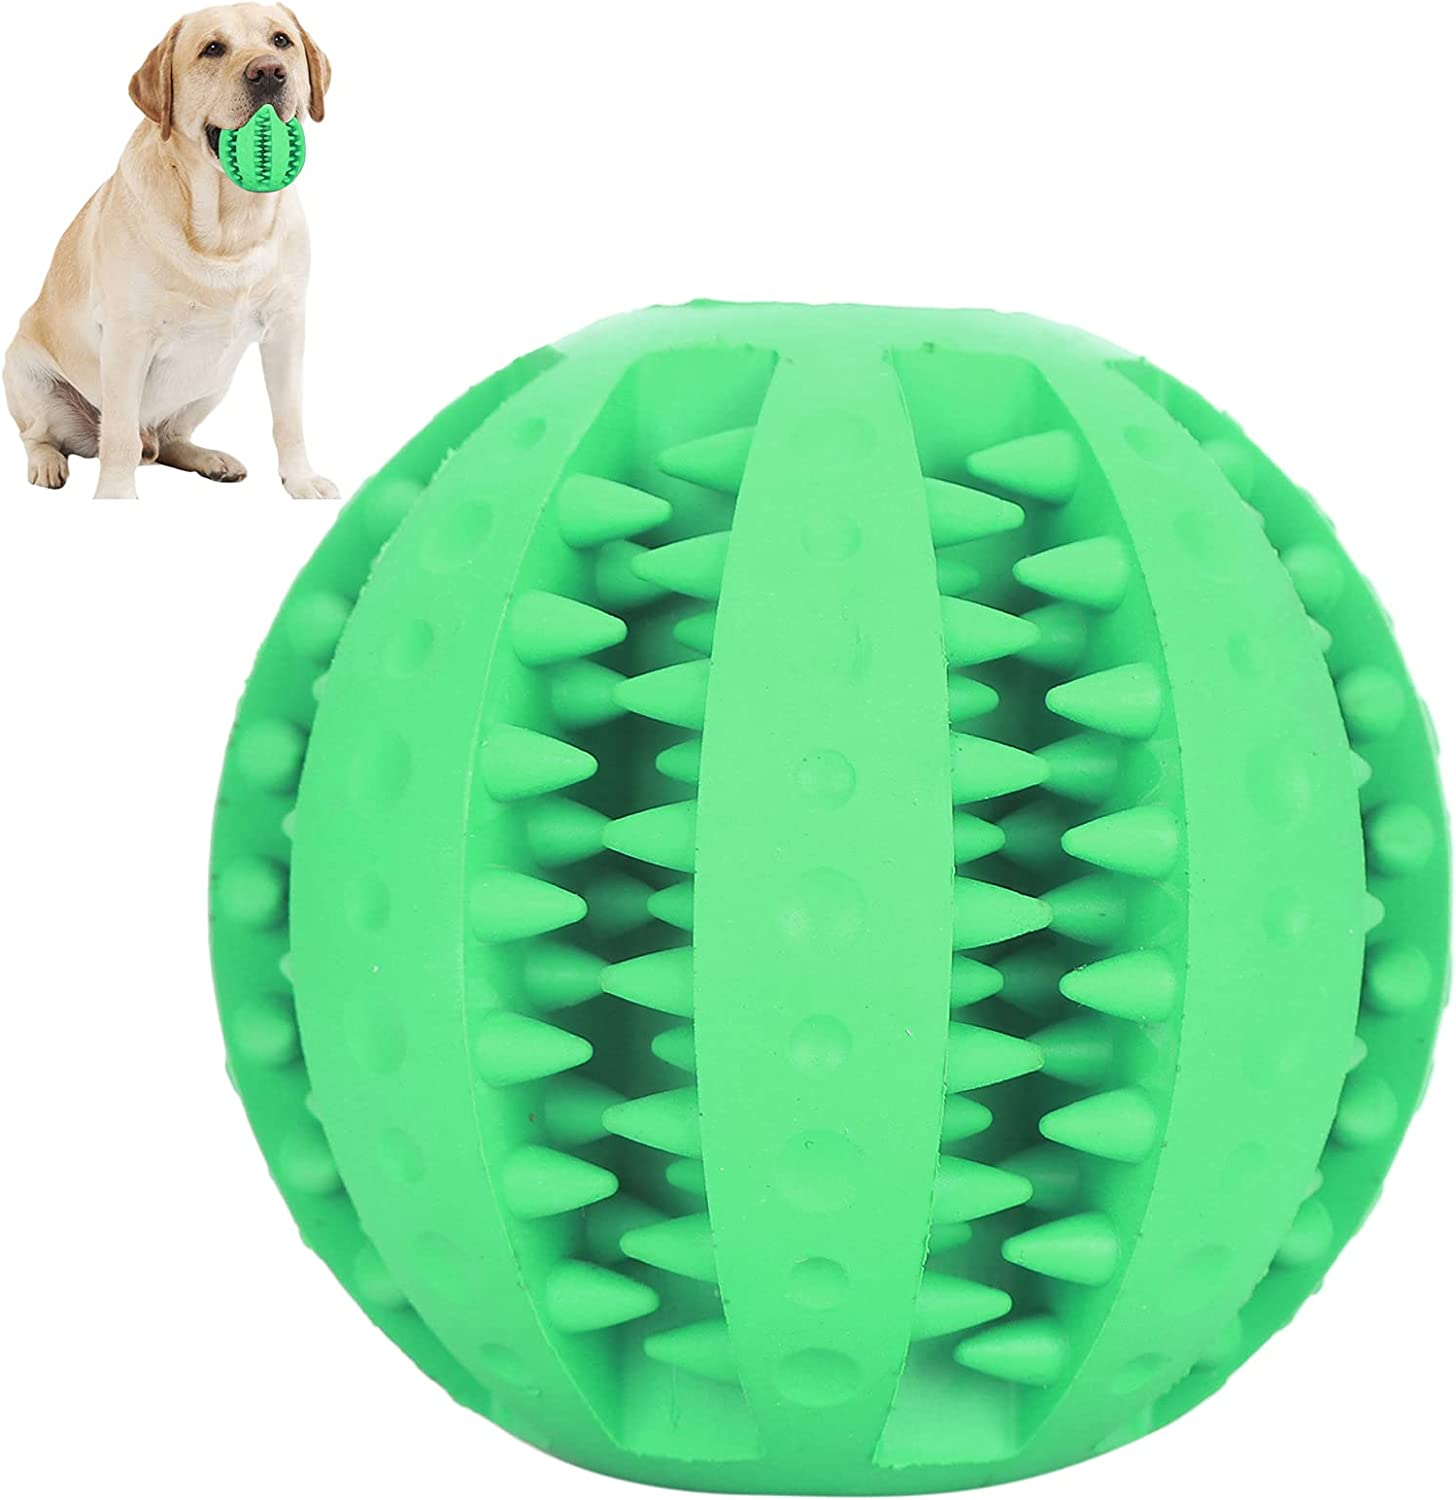 Pet Toy Ball Teething Limited Special Price Treat Clever Rubber Max 61% OFF Leakage Material